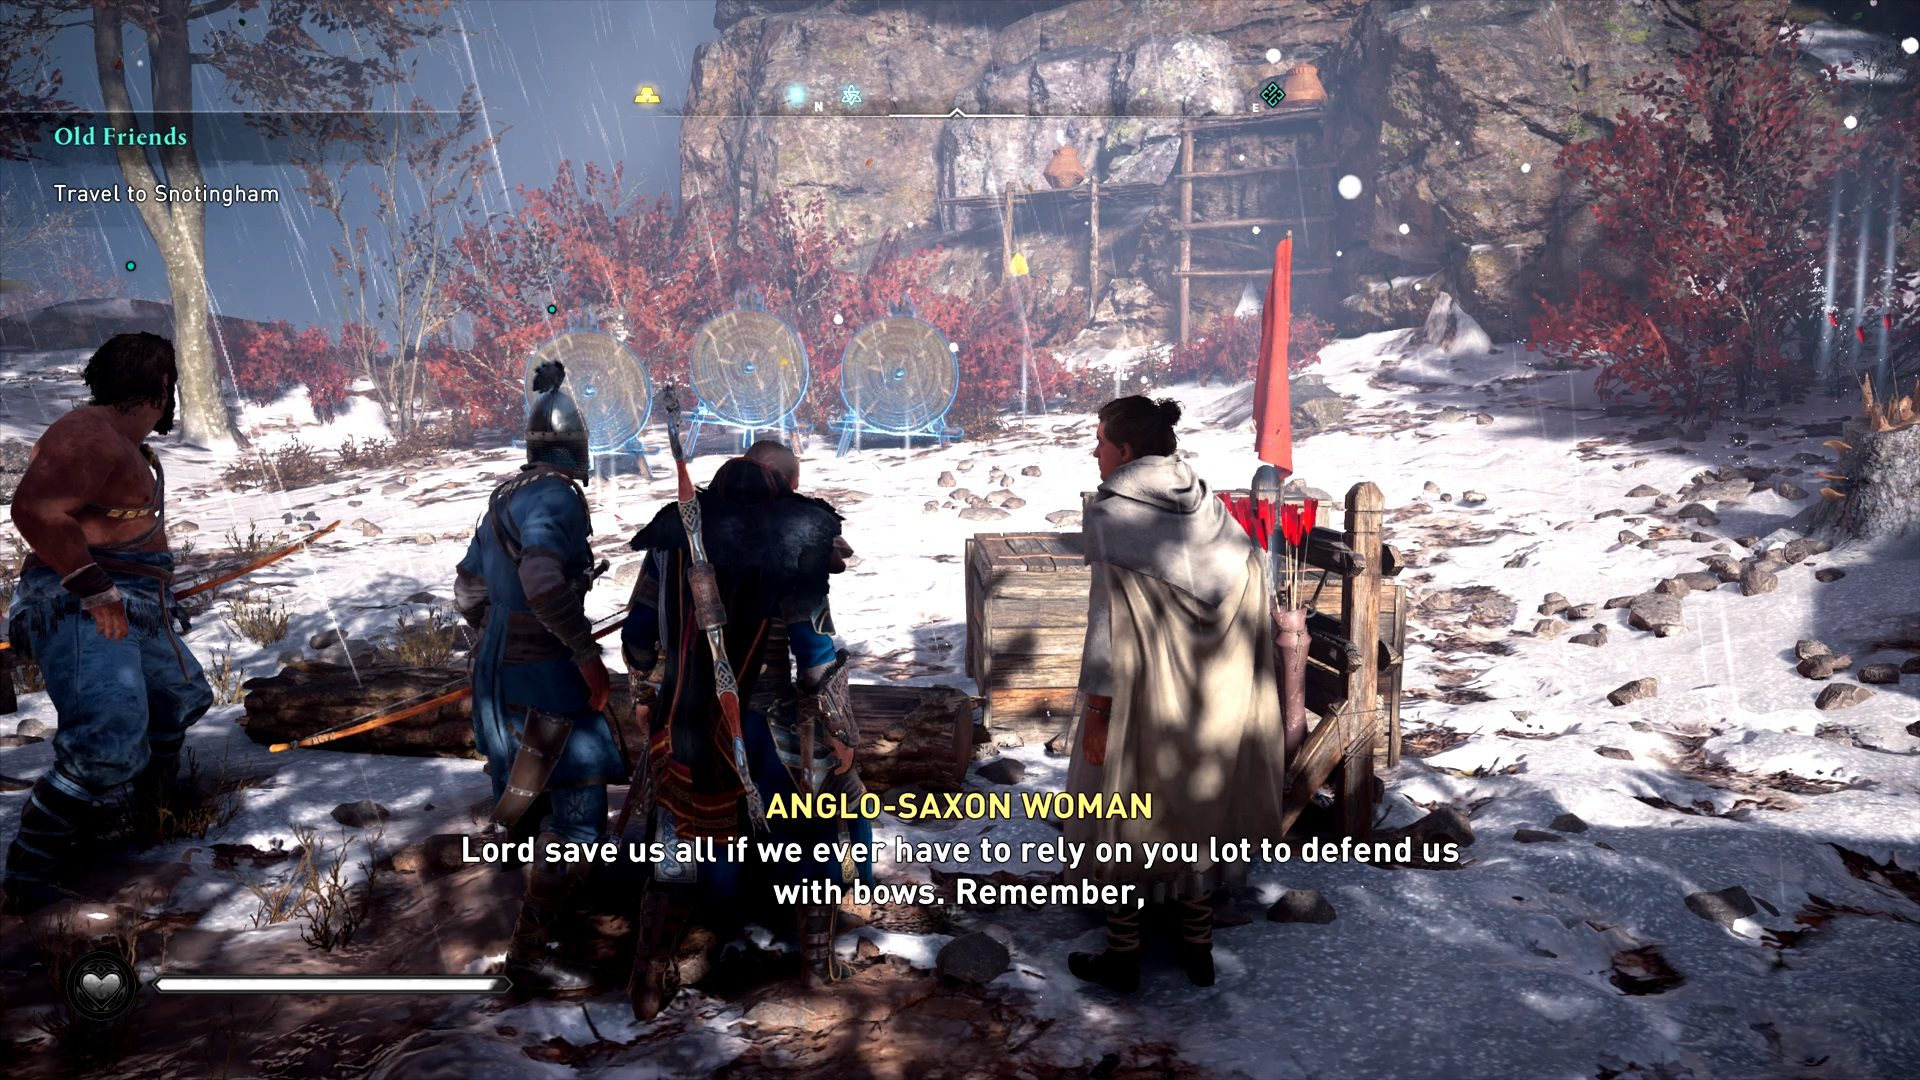 Assassin's Creed Valhalla Archers Training Camp Mystery